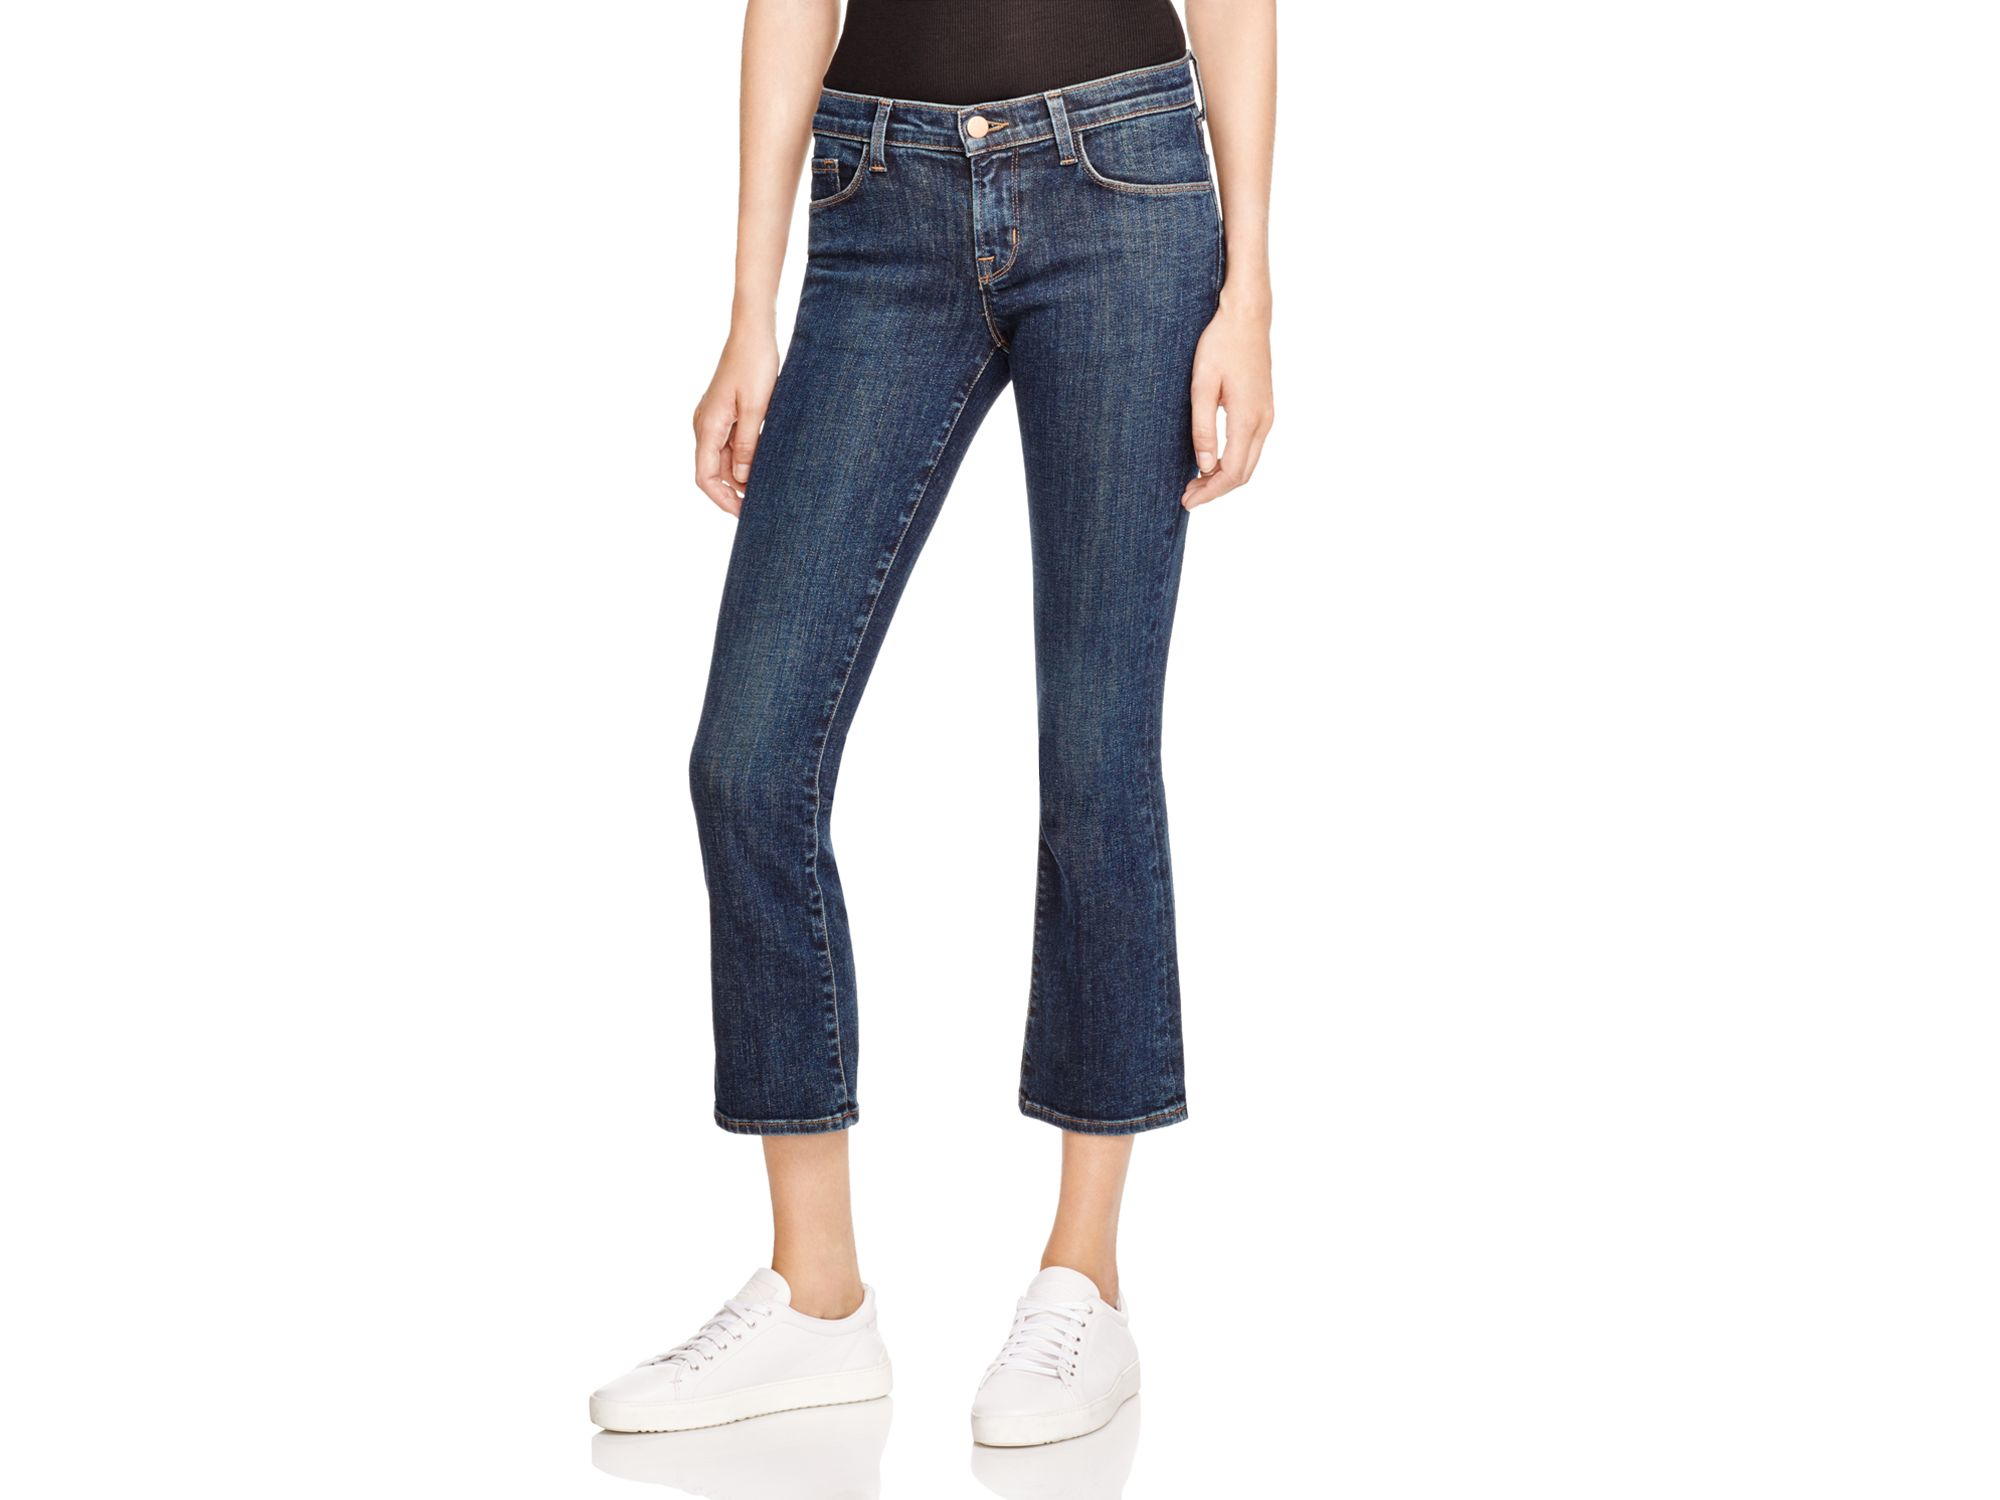 c0edda120467a J Brand Selena Cropped Bootcut Jeans In Lonesome in Blue - Lyst